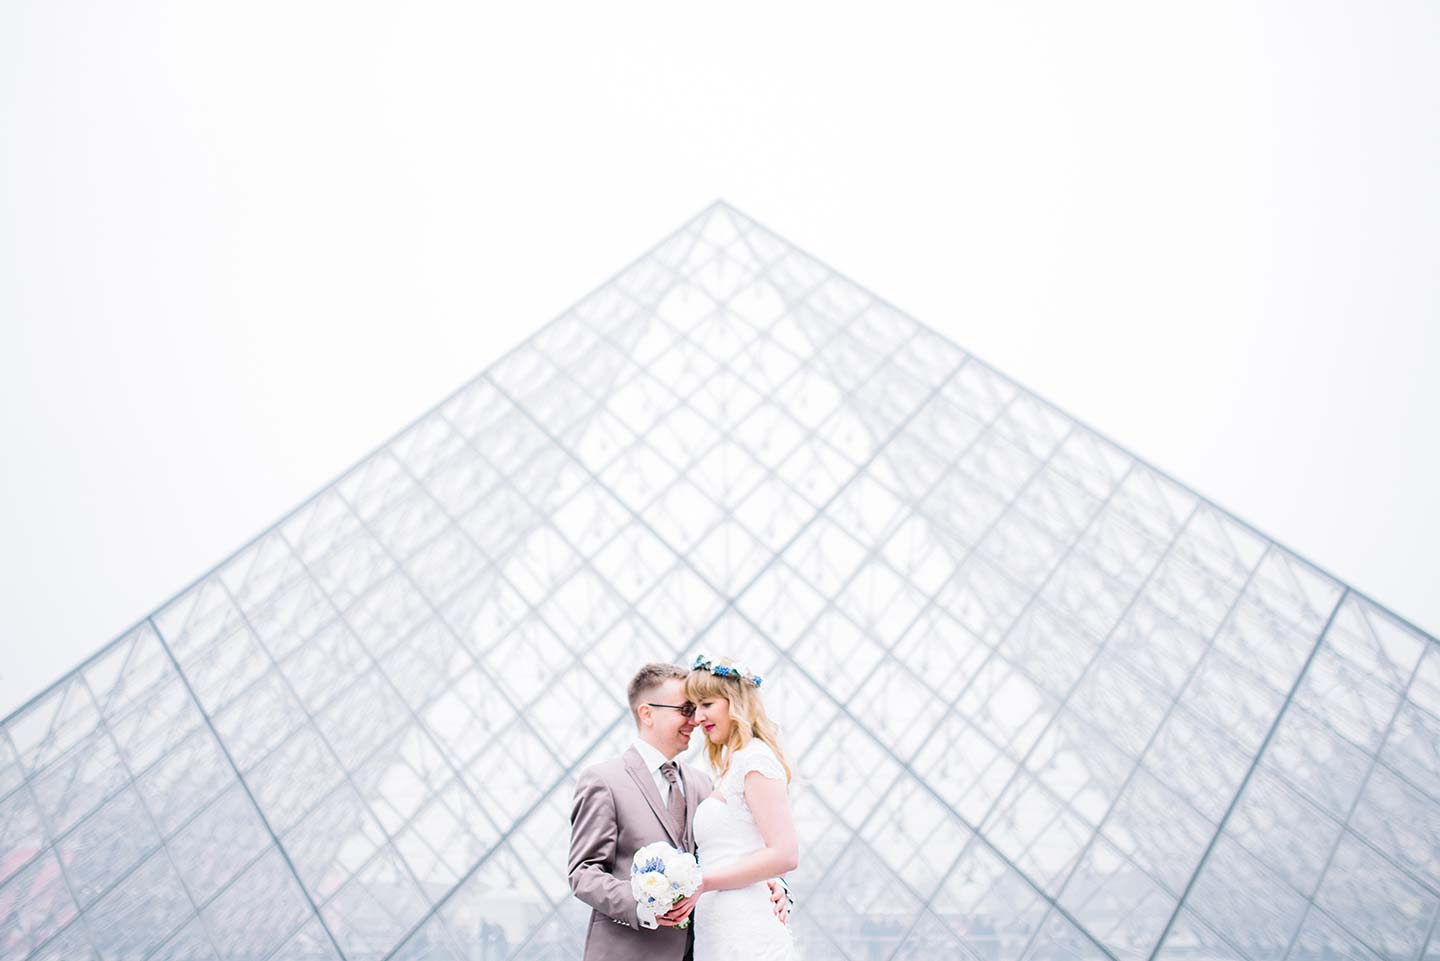 Elisabeth & Marcel: After Wedding-Amour in Paris